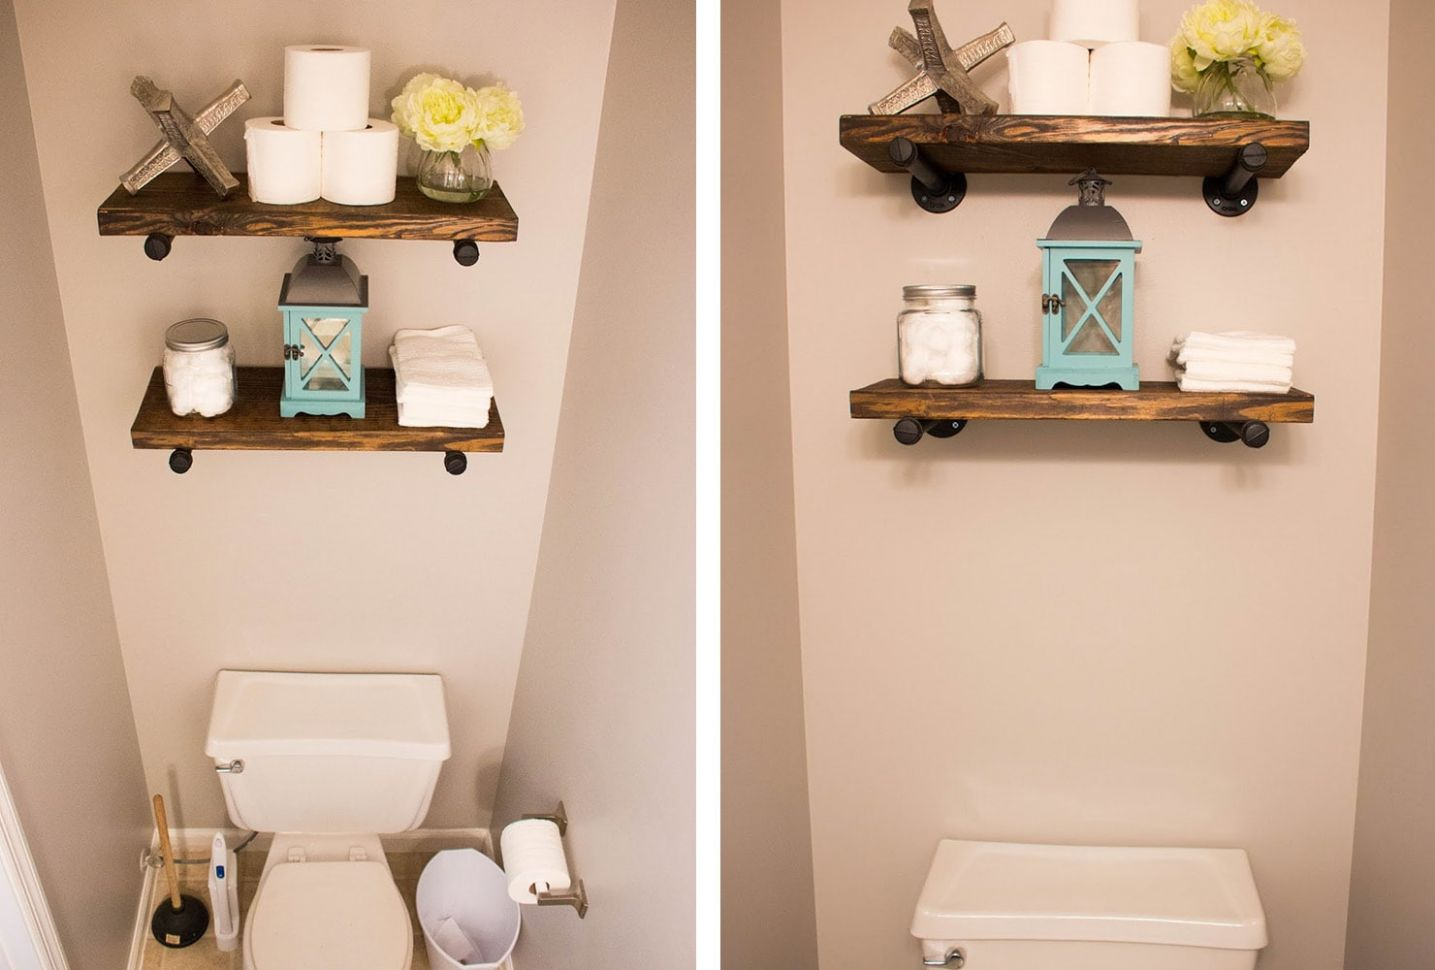 11 Ways To Decorate A Small Bathroom | Shutterfly